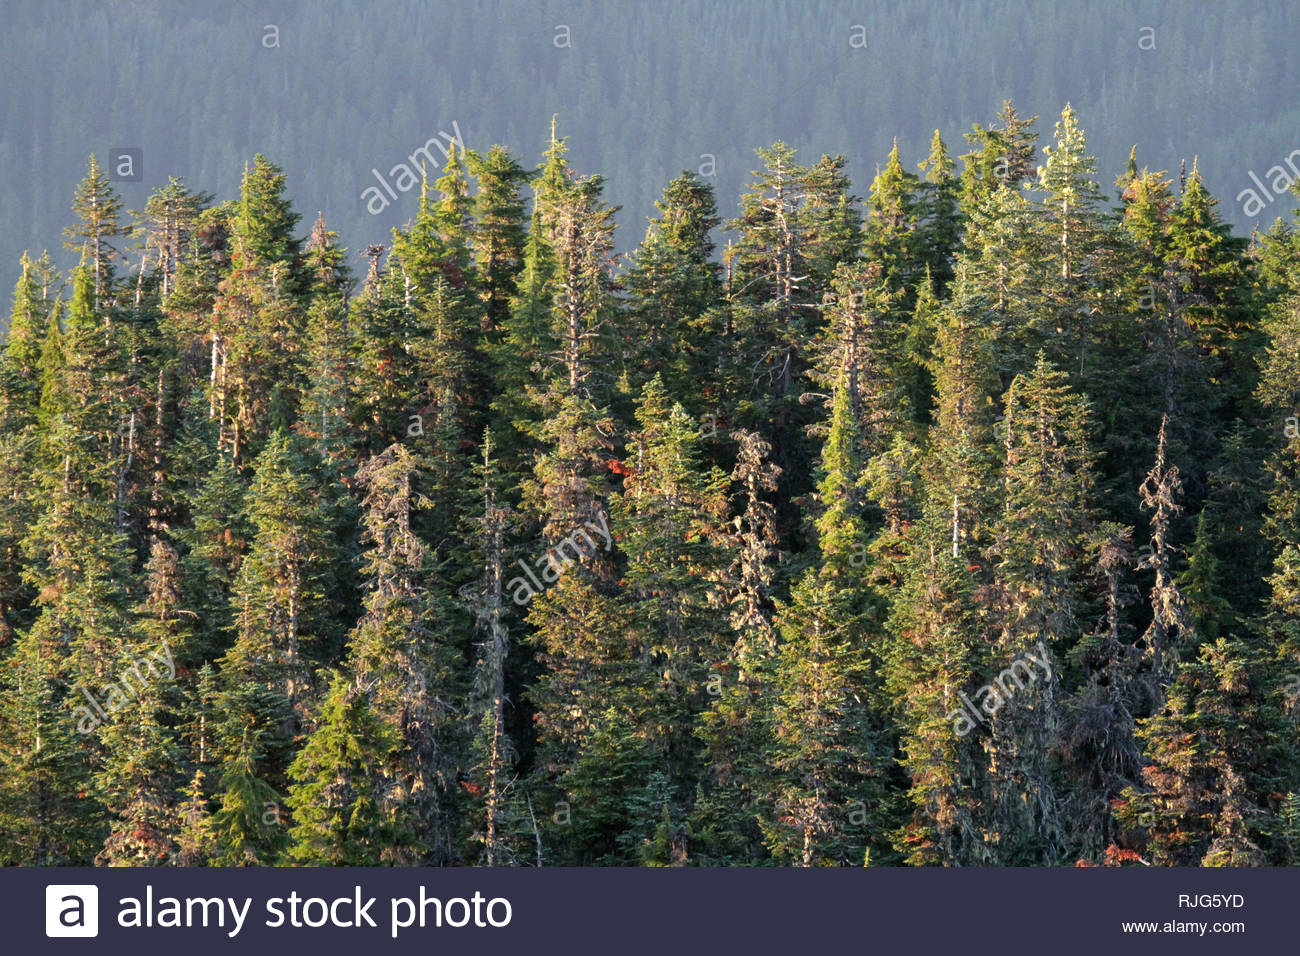 Mixed Montane conifer forest of trees, from Carpenter Mountain fire lookout, H.J. Andrews Forest, Willamette National Forest, Oregon, USA - Stock Image